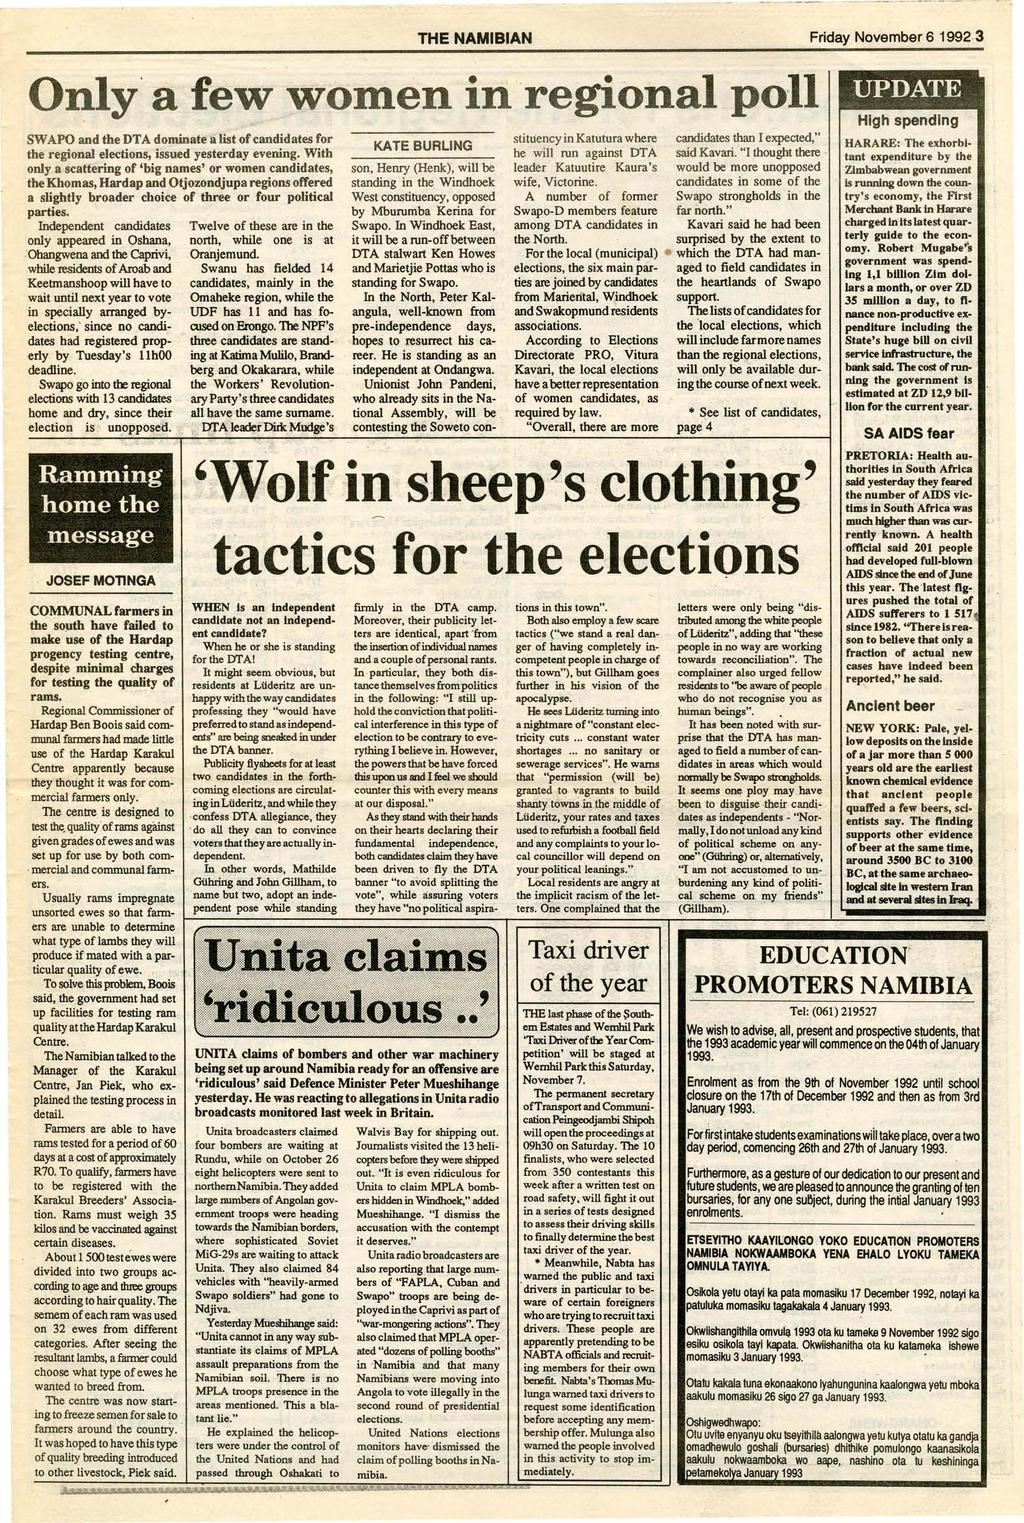 THE NAMIBIAN Friday November 6 1992 3 Only' a few women in regional poll UPDATE SWAPO and the DT A dominate a list of candidates for the regional elections, issued yesterday evening.